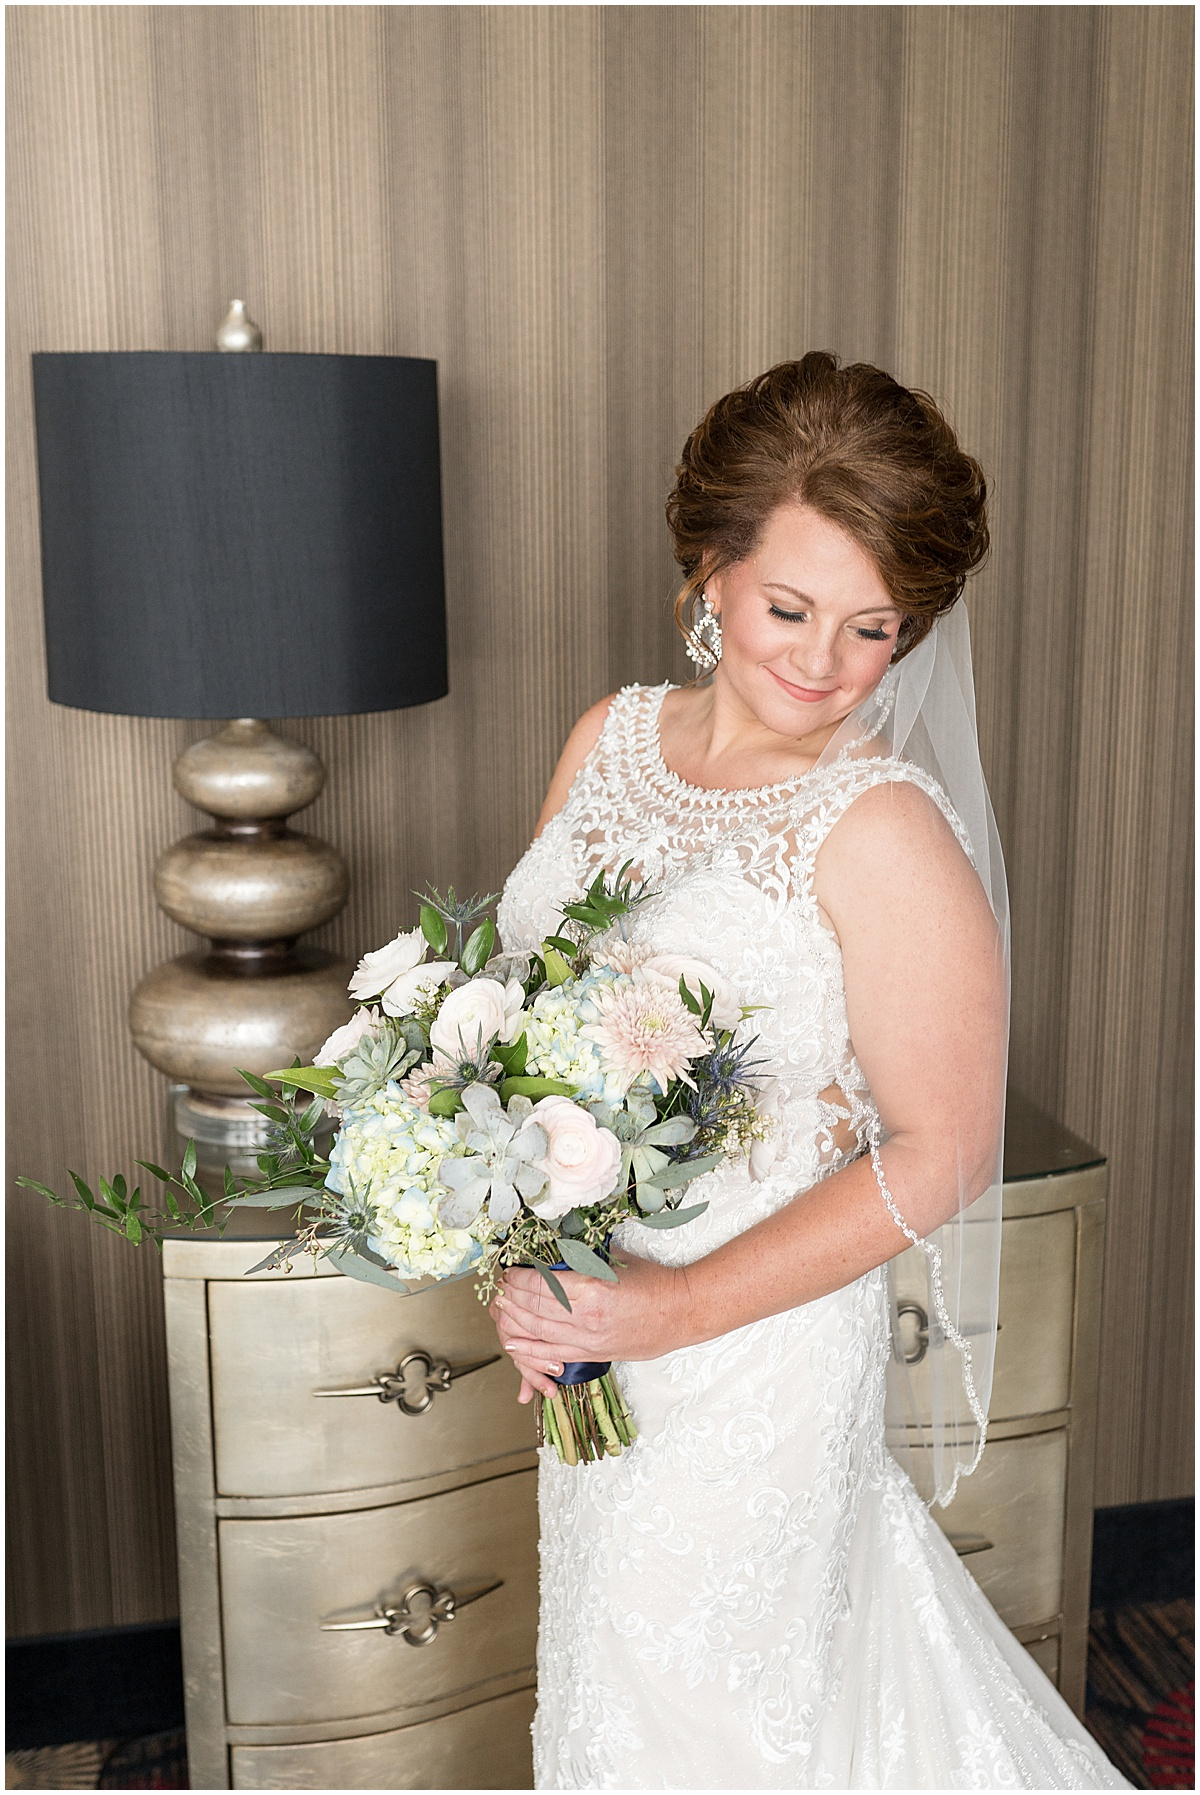 Bridal portraits at a wedding at The Brandywine in Monticello, Indiana